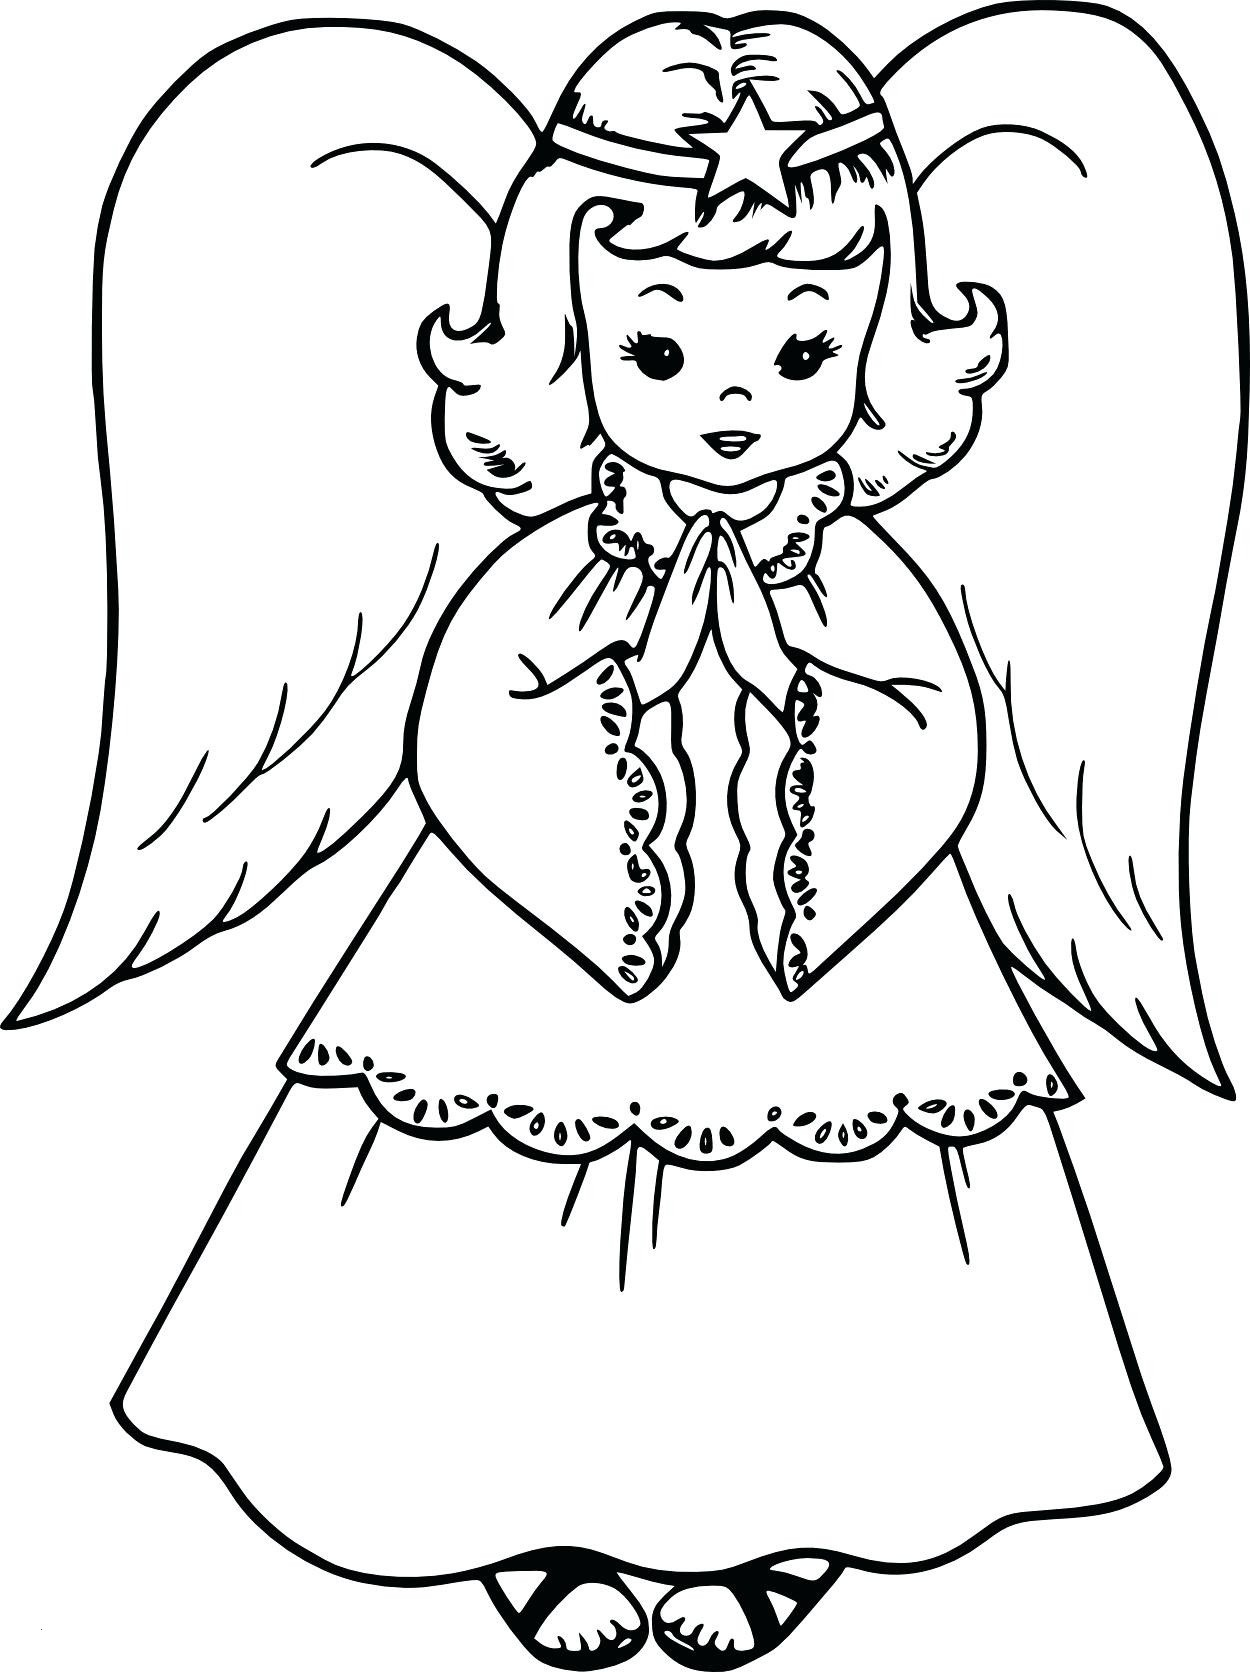 Christmas Angel Ornaments Coloring Pages Printable With New Stylish